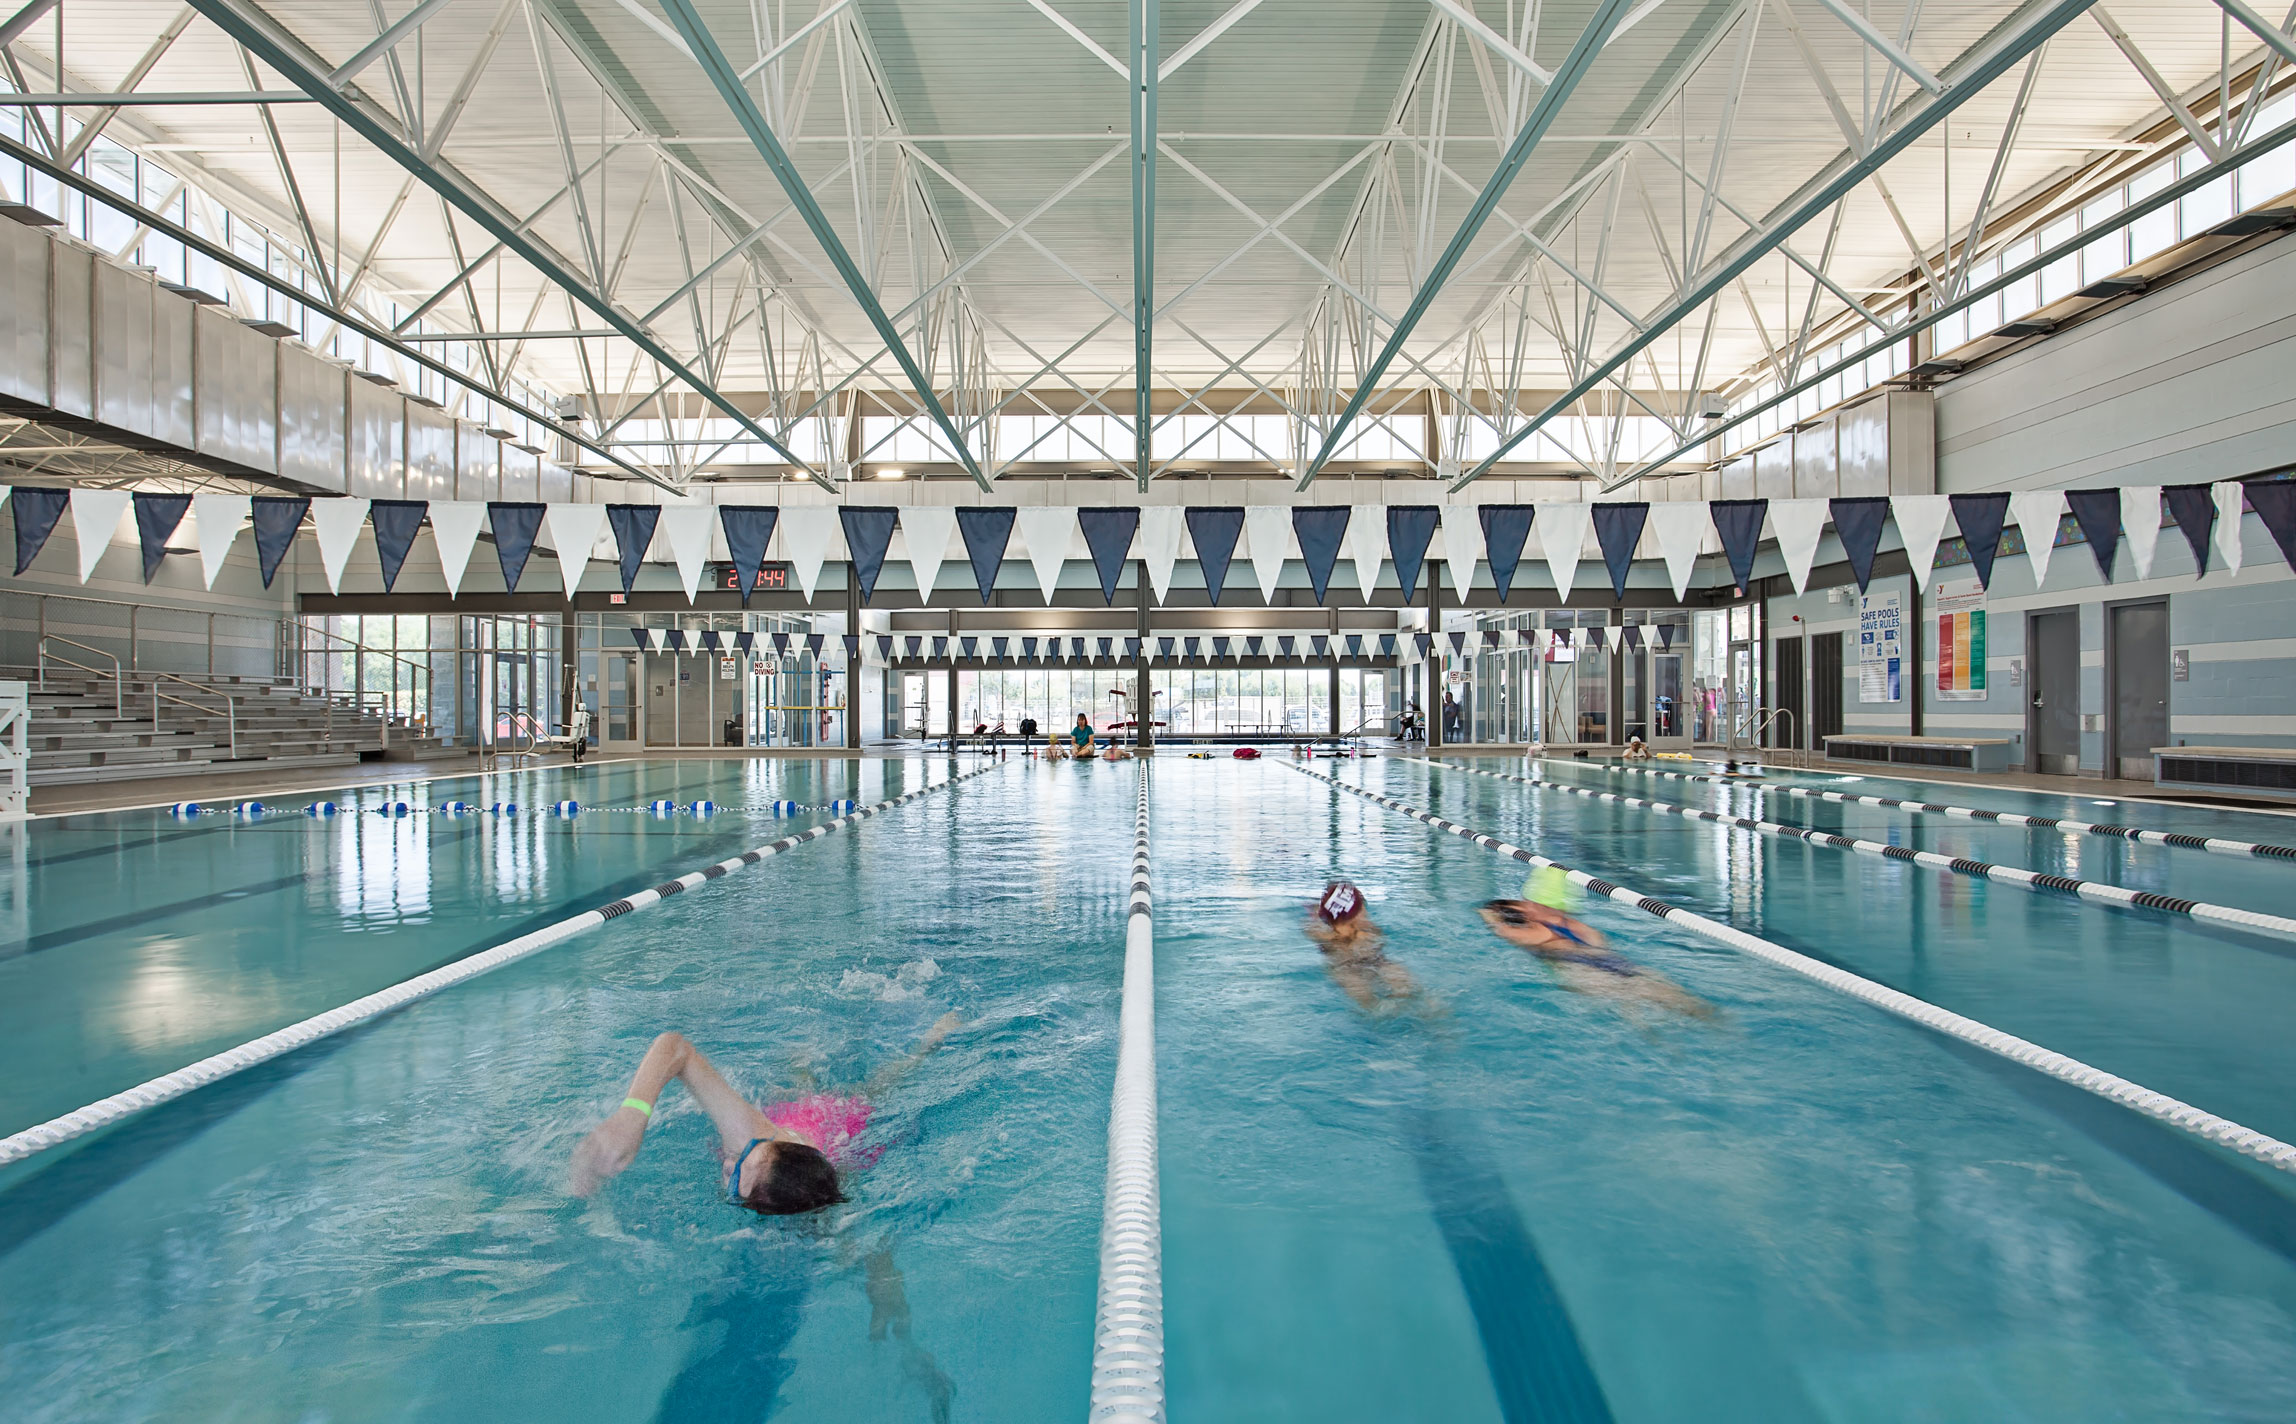 City Of Schertz Natatorium Marmon Mok Architecture